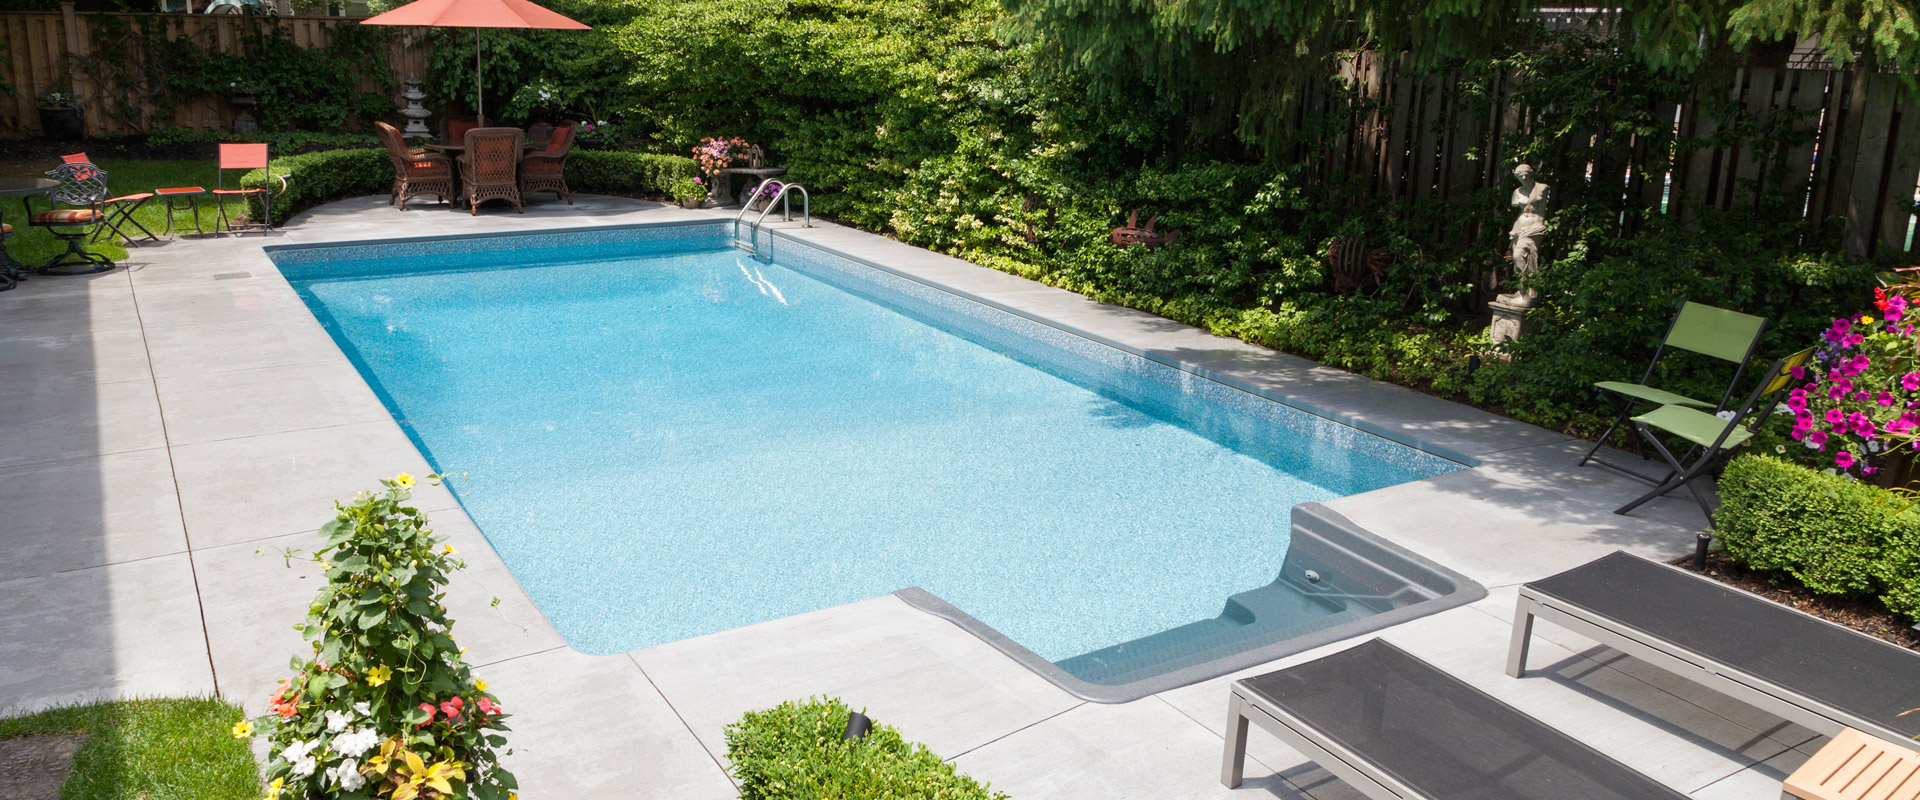 The De Graafs Inground Pool Showcase Pioneer Family Pools